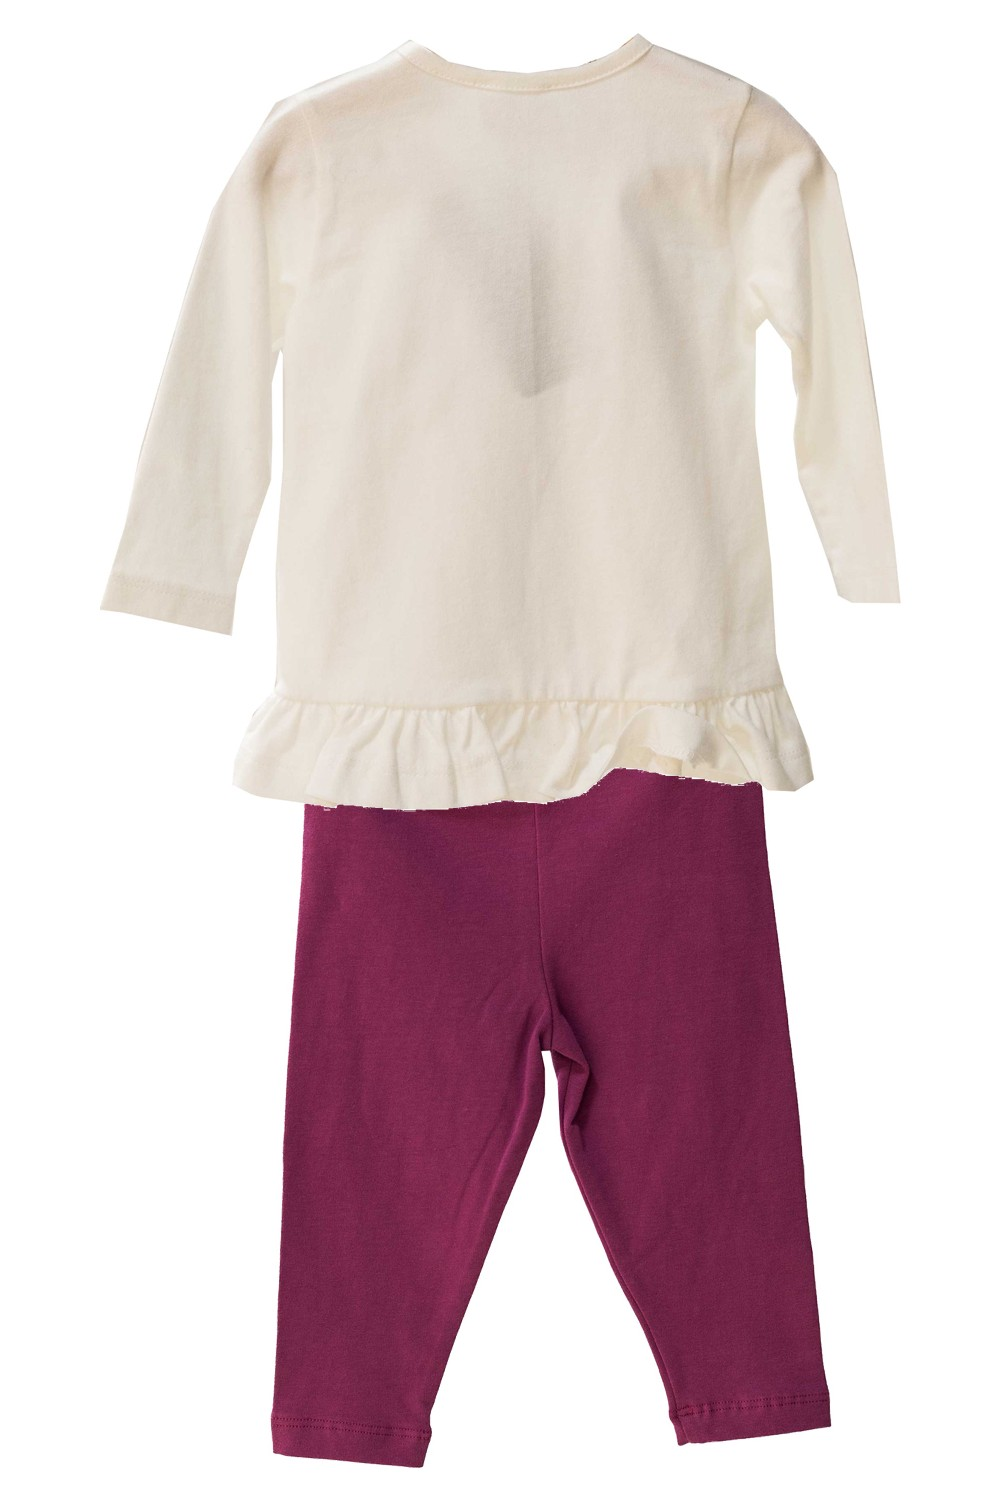 Zeyland Girls' Clothing Set - 2 Pcs